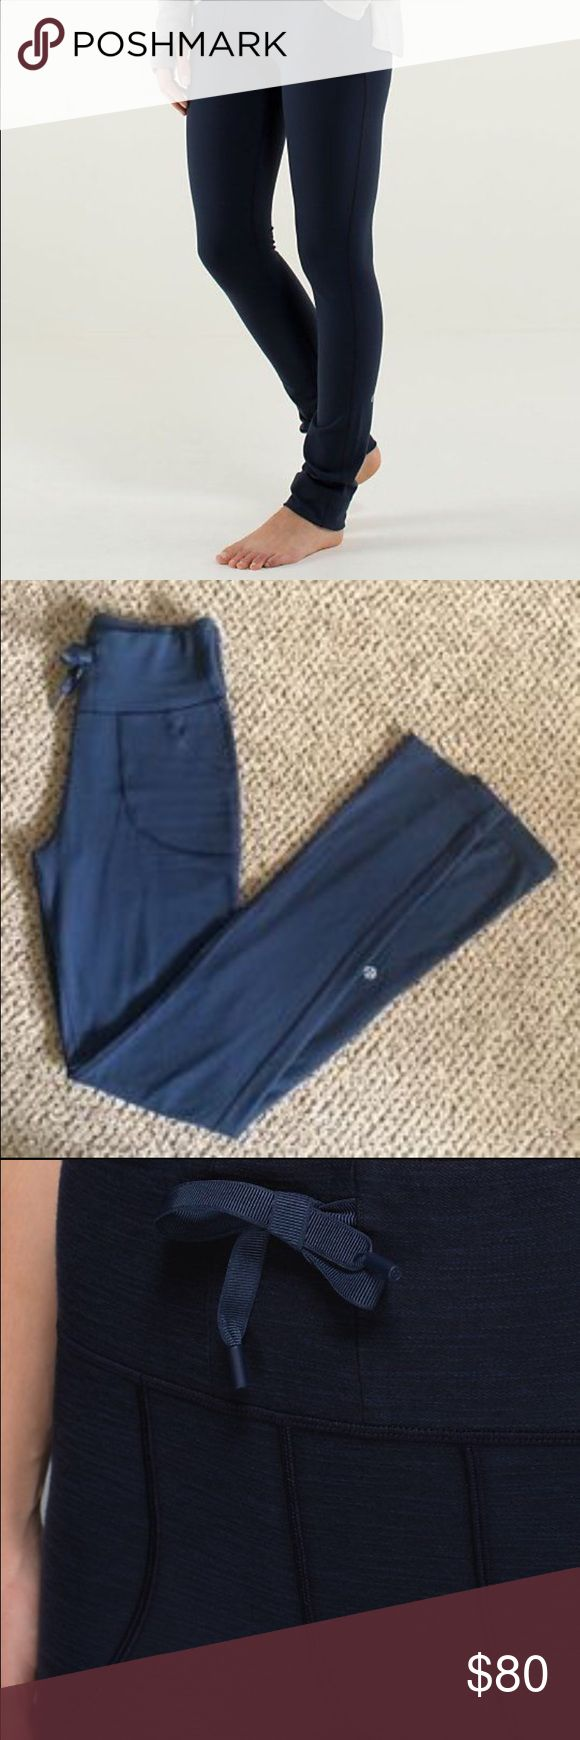 Lululemon skinny will pant, size 2 - navy Like new, very flattering fit. High wasted skinny pant, perfect for gym or causal. lululemon athletica Pants Leggings